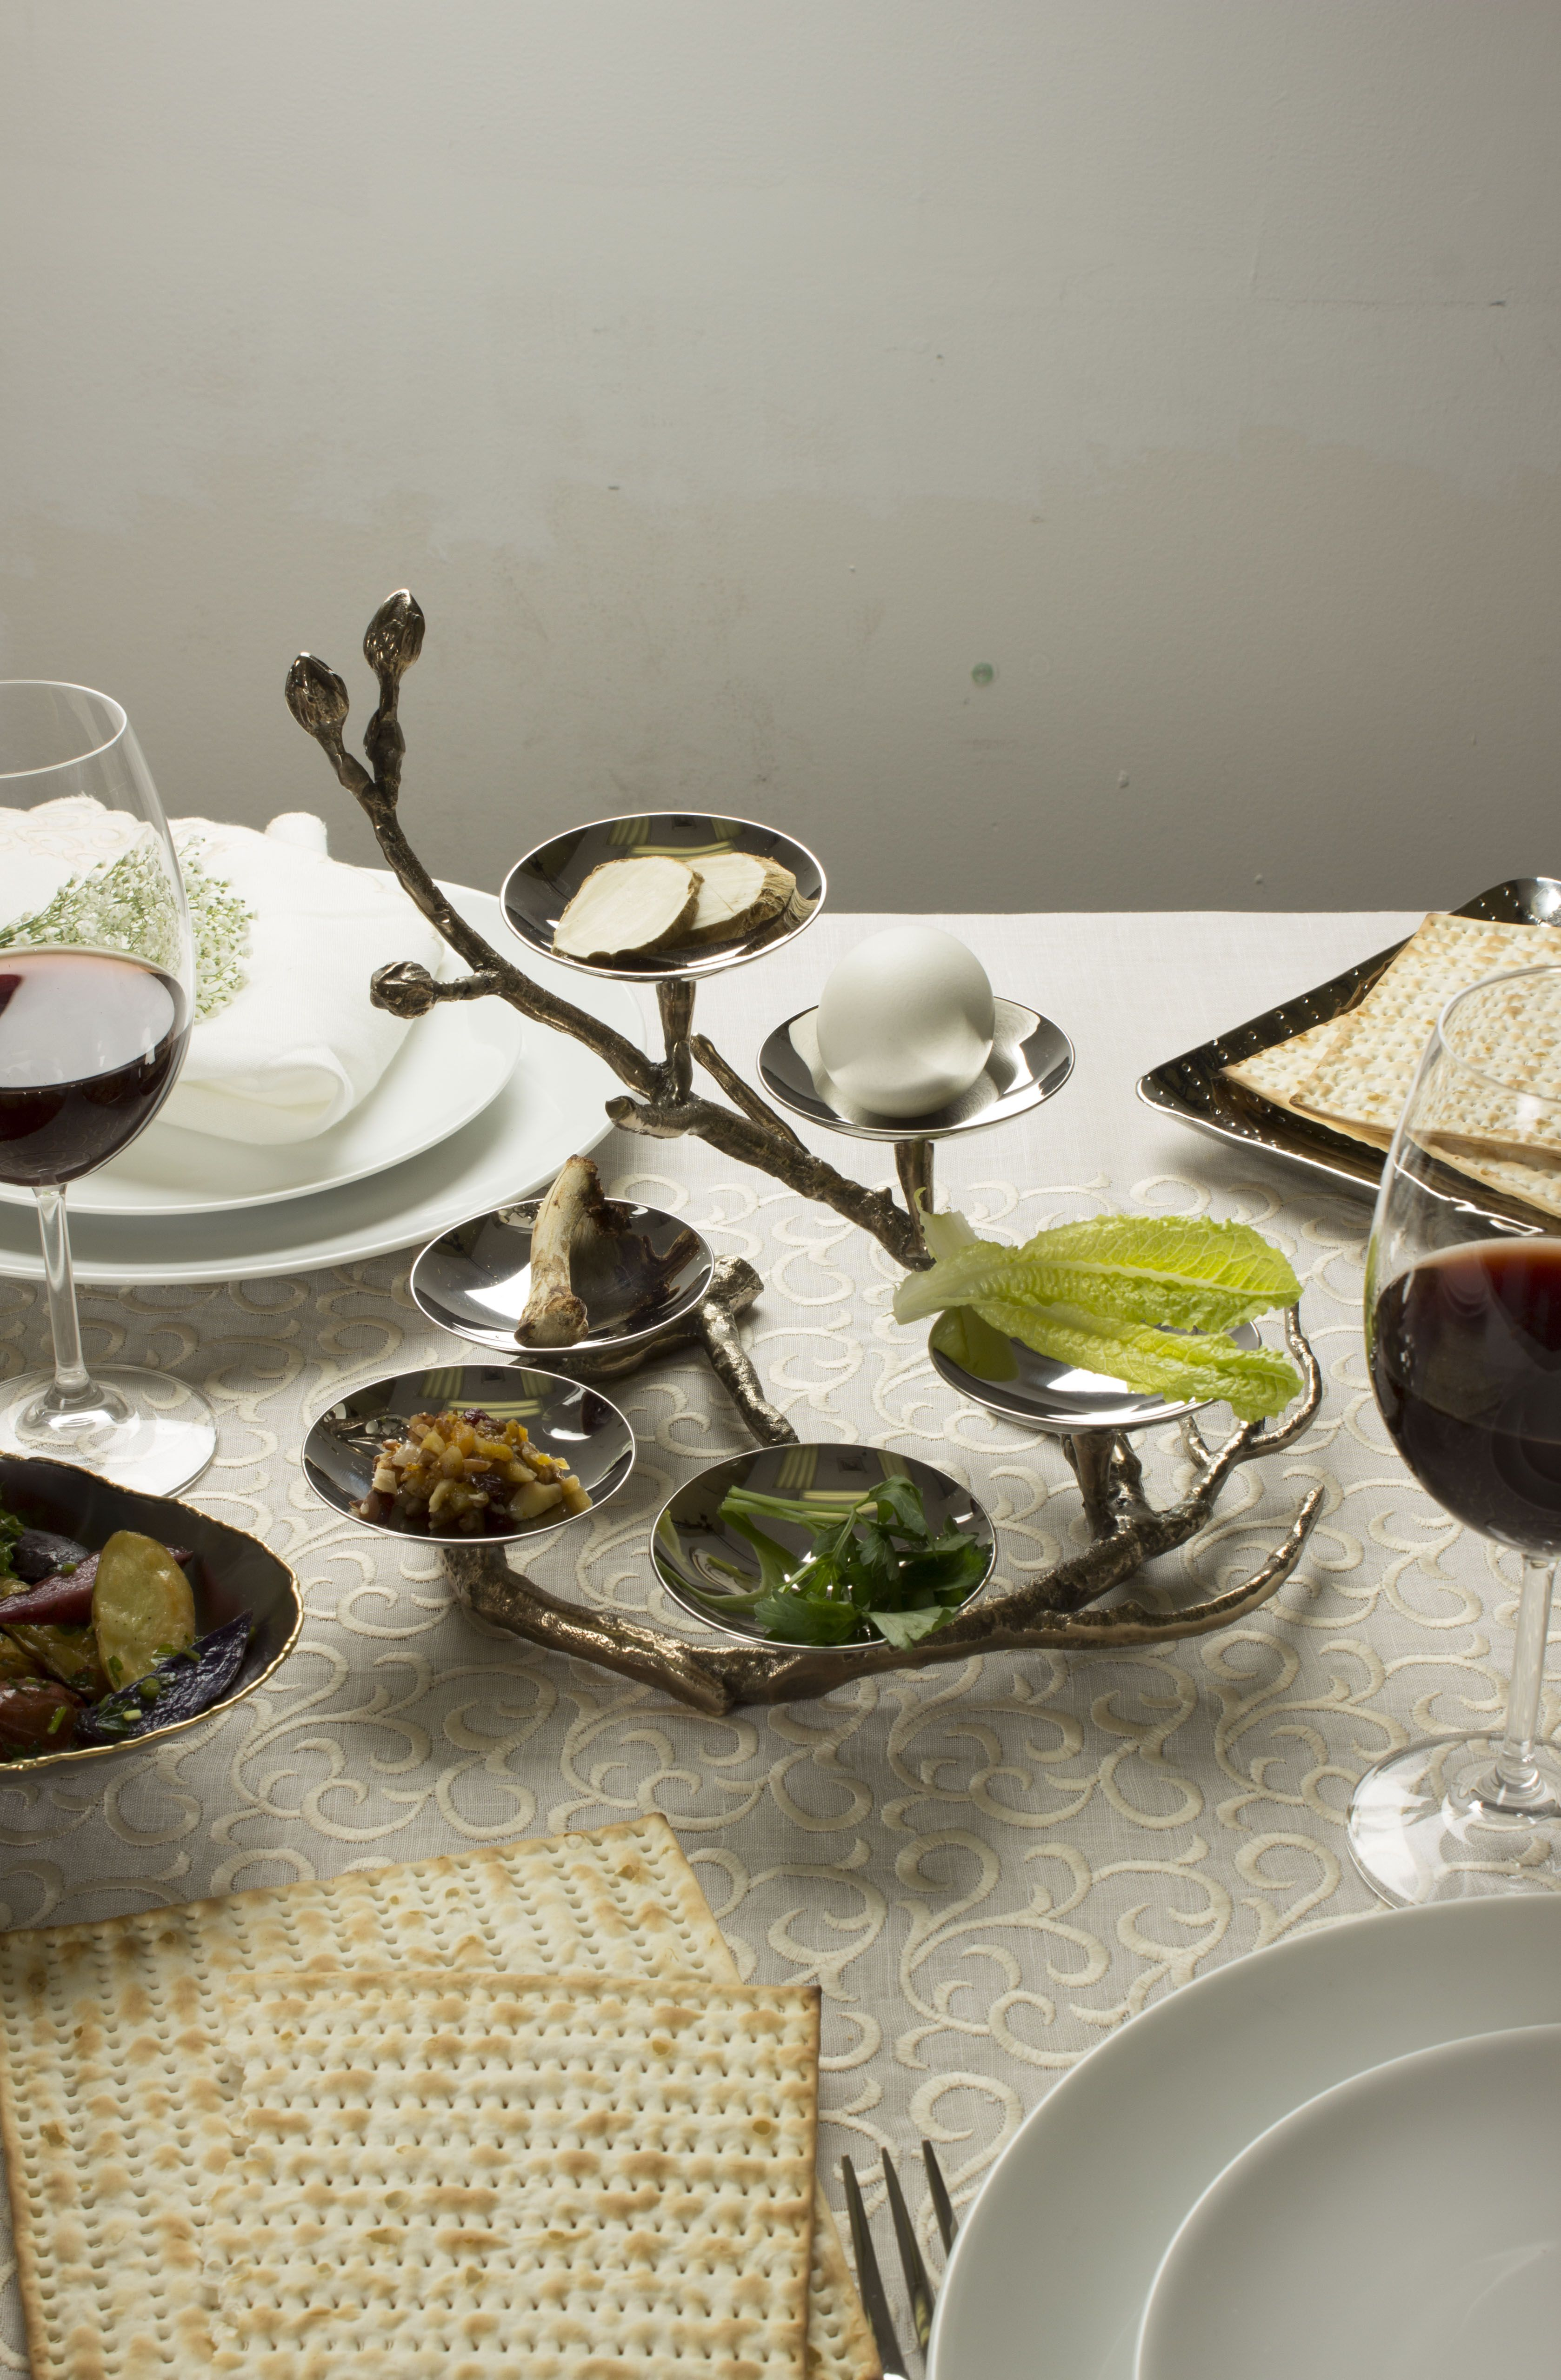 Pin By Quest Collection On Dress Your Table This Passover